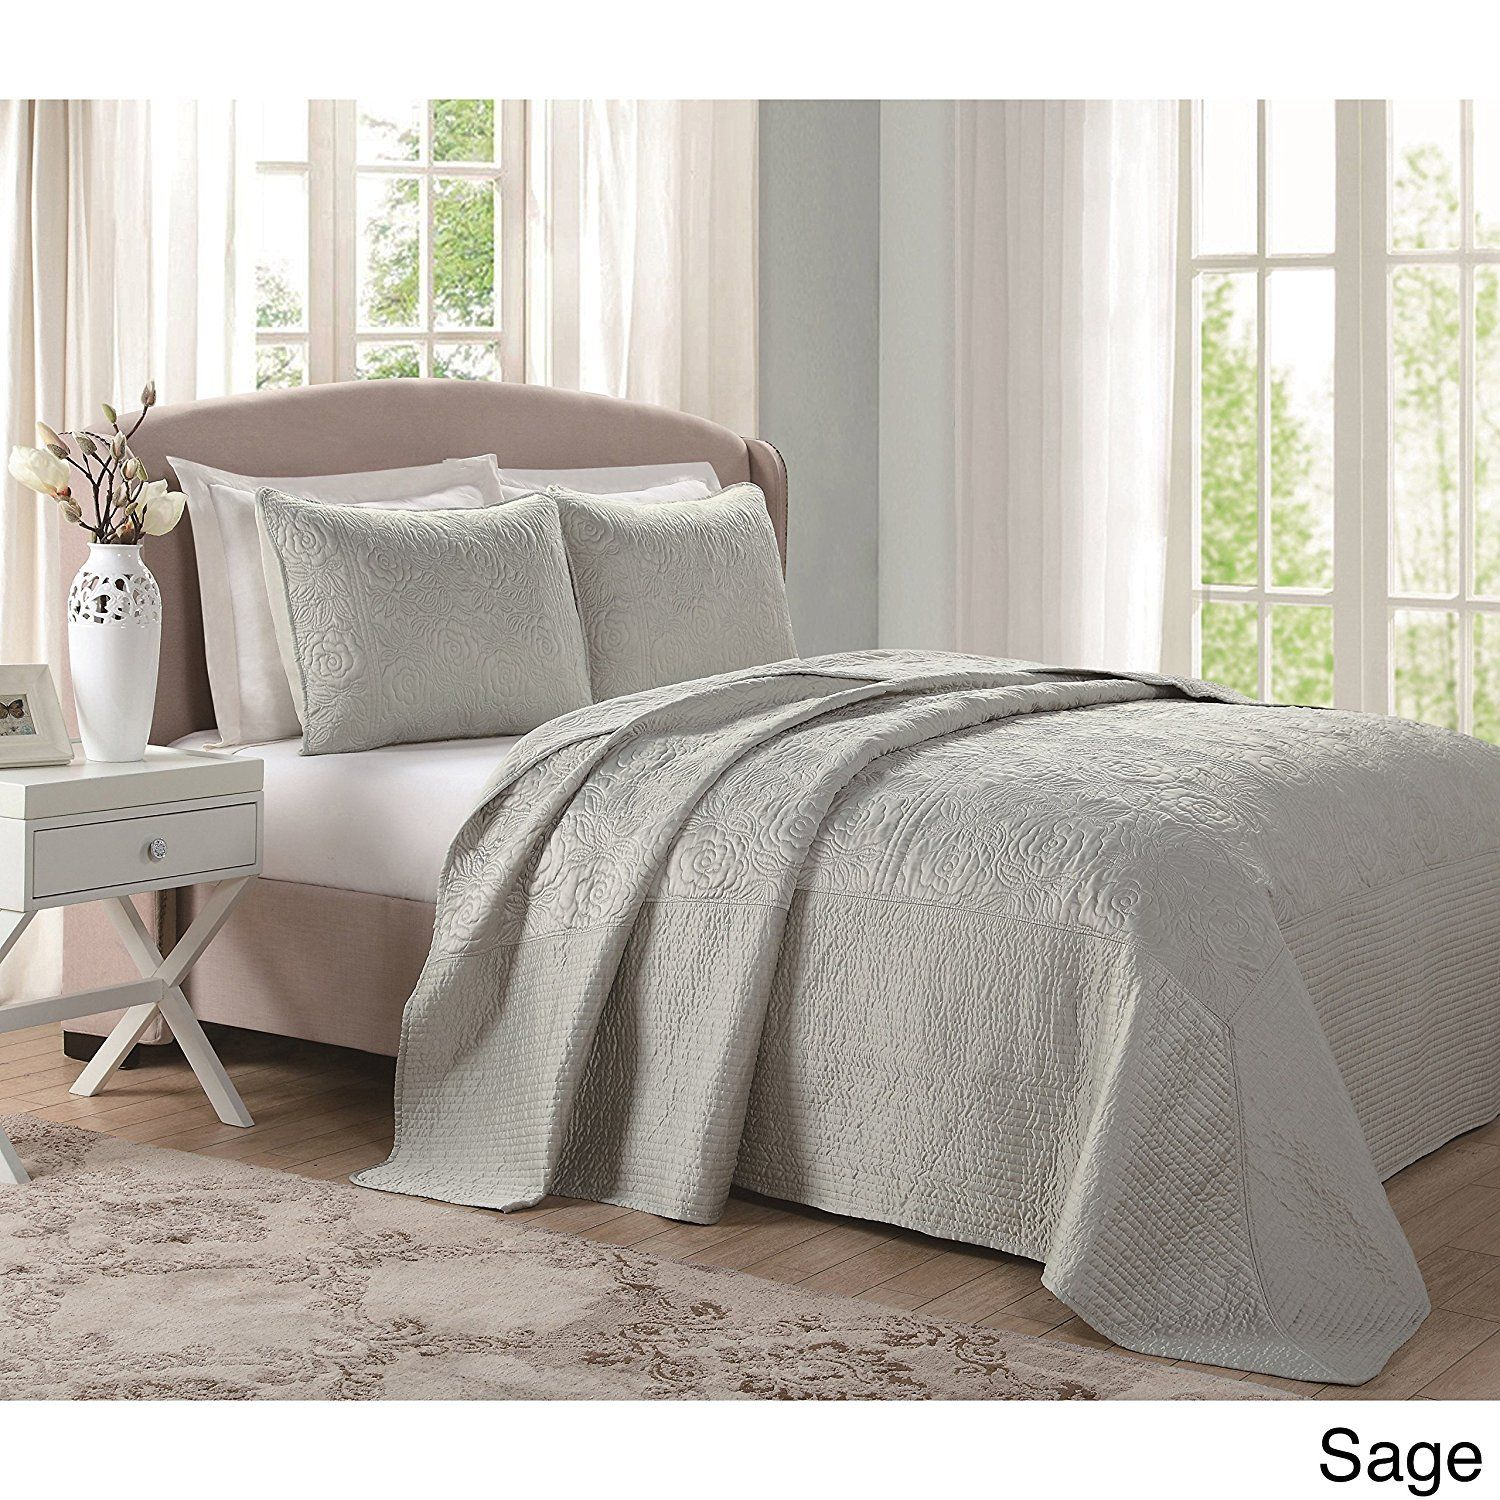 110 X 90 Oversized Sage Full Bedspread Floor Extra Long Floral